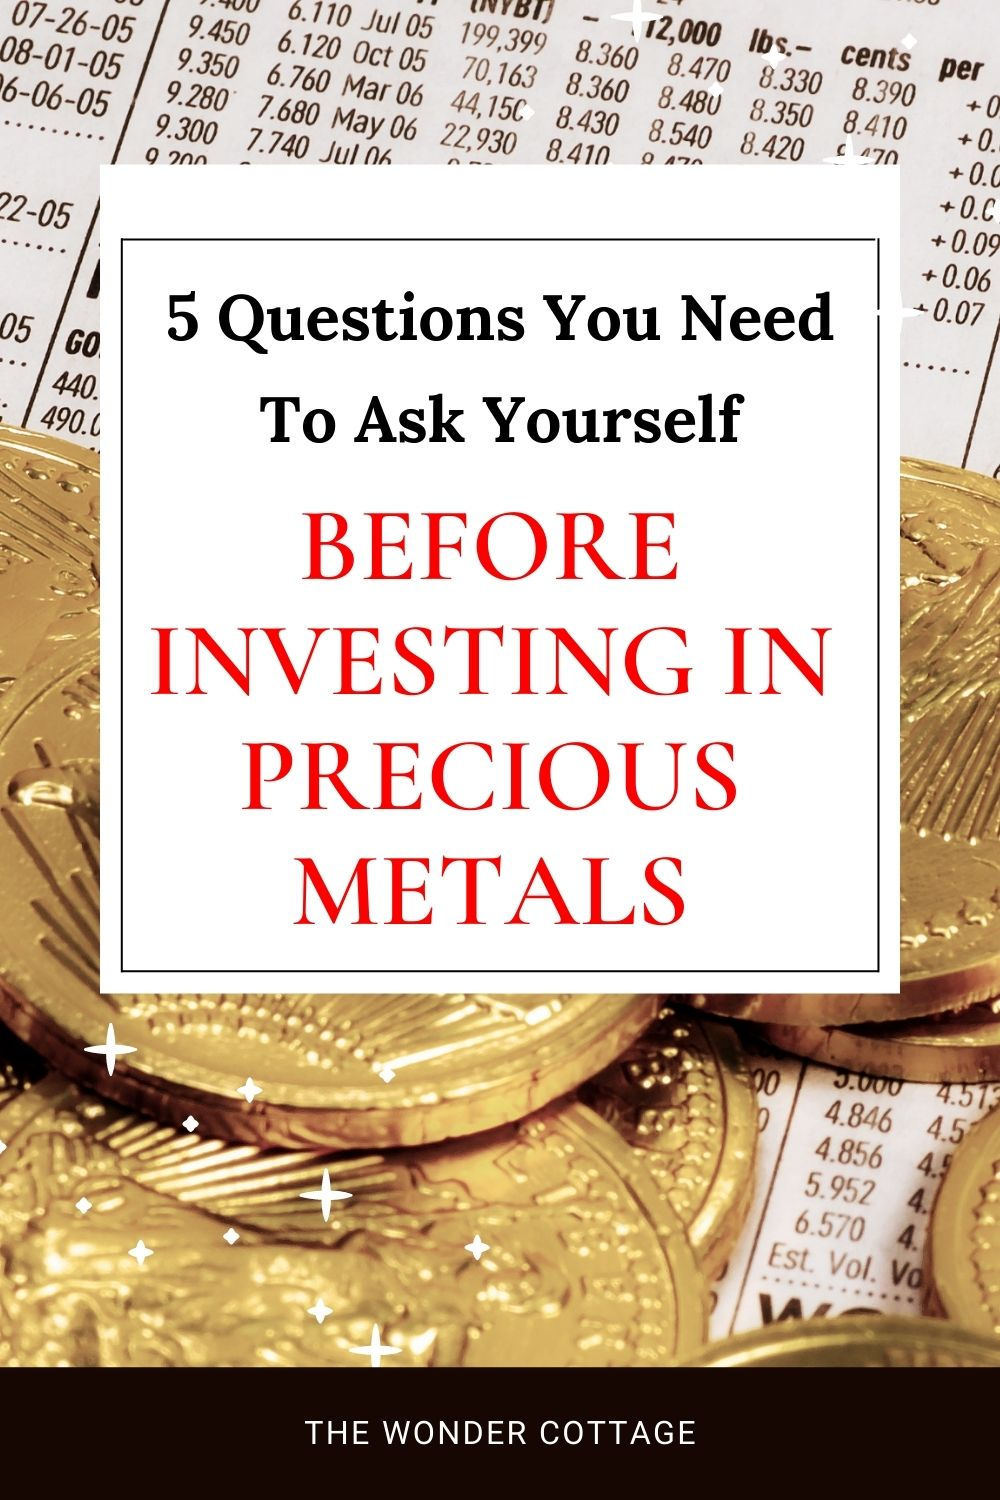 5 Questions To Ask Yourself Before Investing In Precious Metals